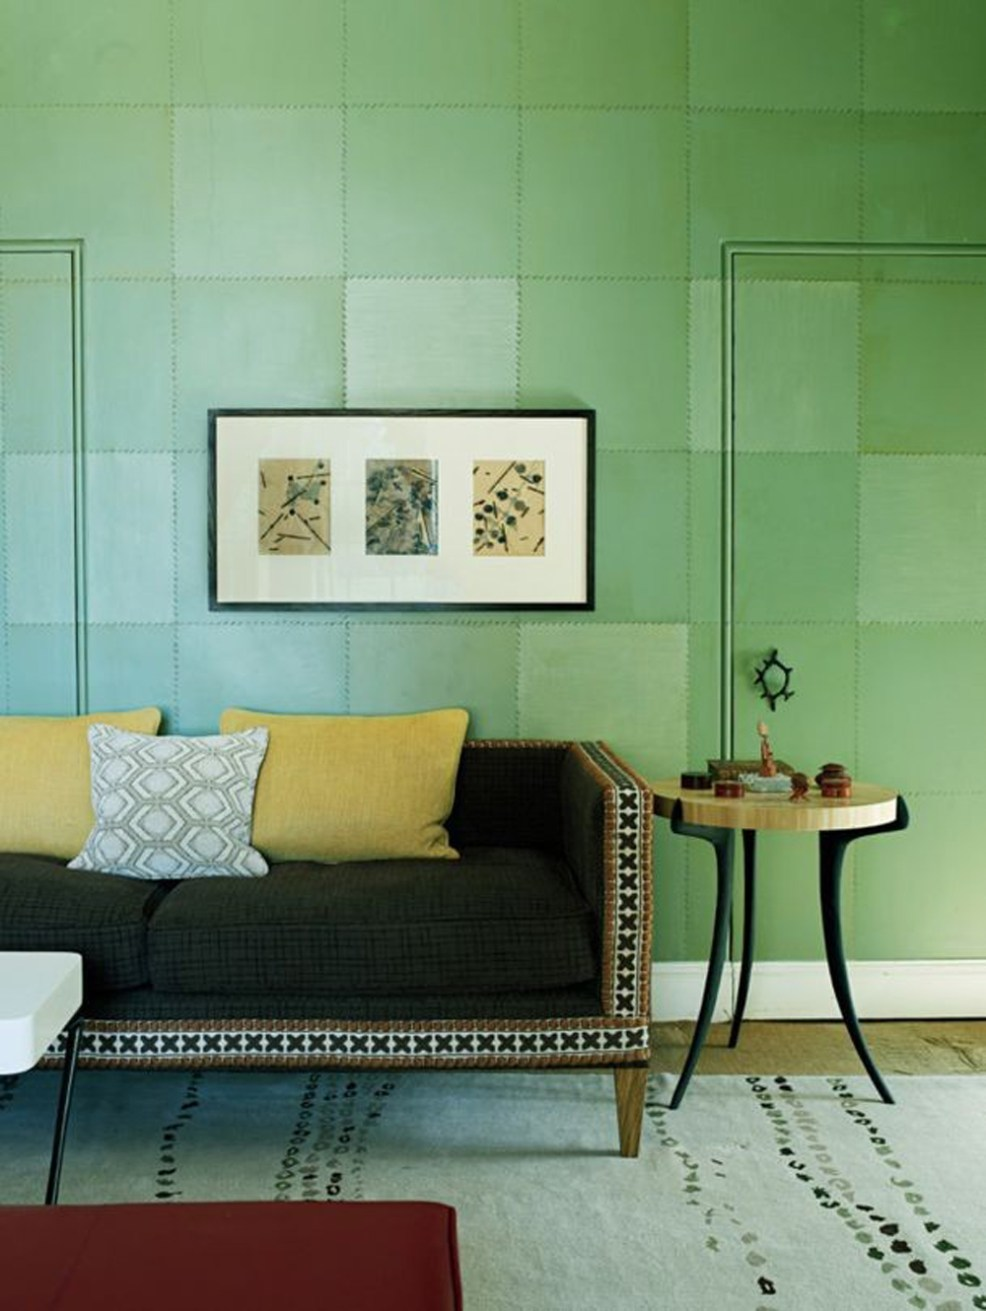 interior-design-color-trends-for-2017-greenery_edited-1